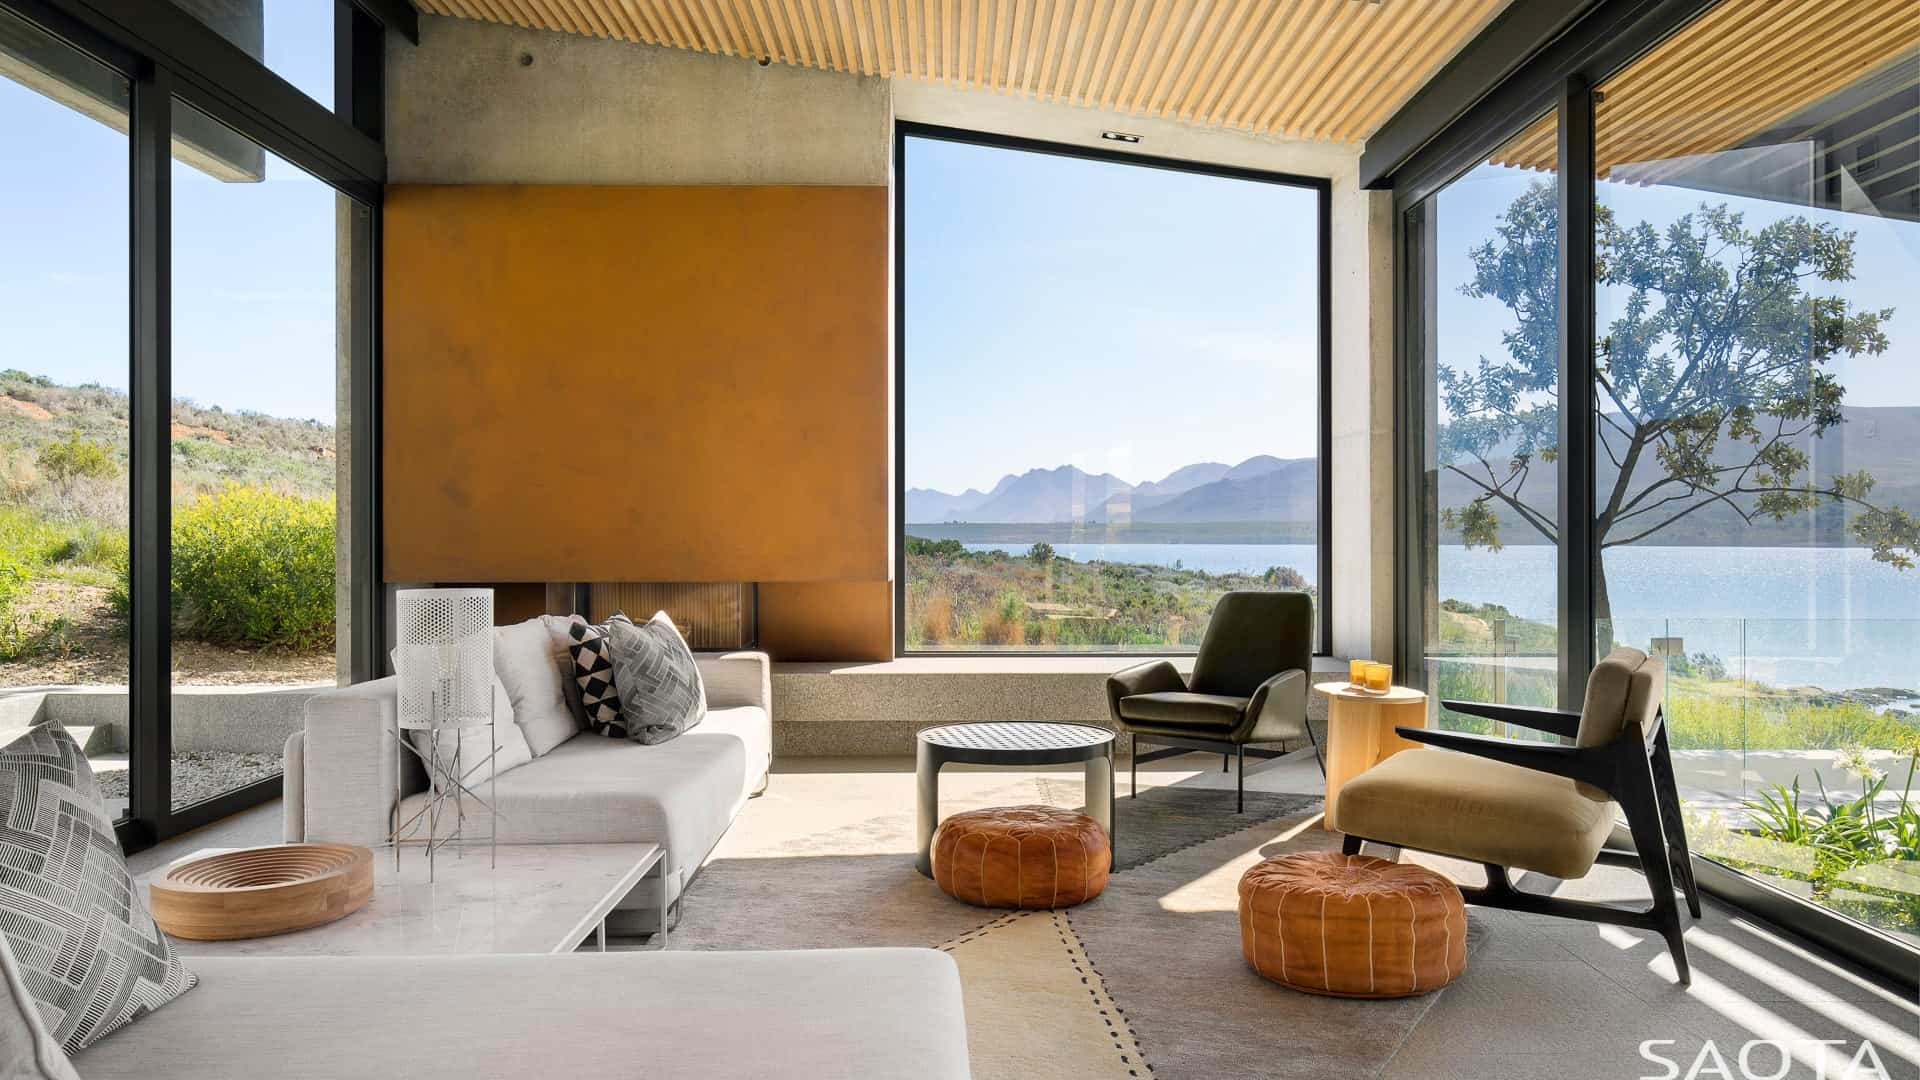 The living room features modern furniture and glass walls overlooking the beautiful outdoor view. Photo Credit: Adam Letch